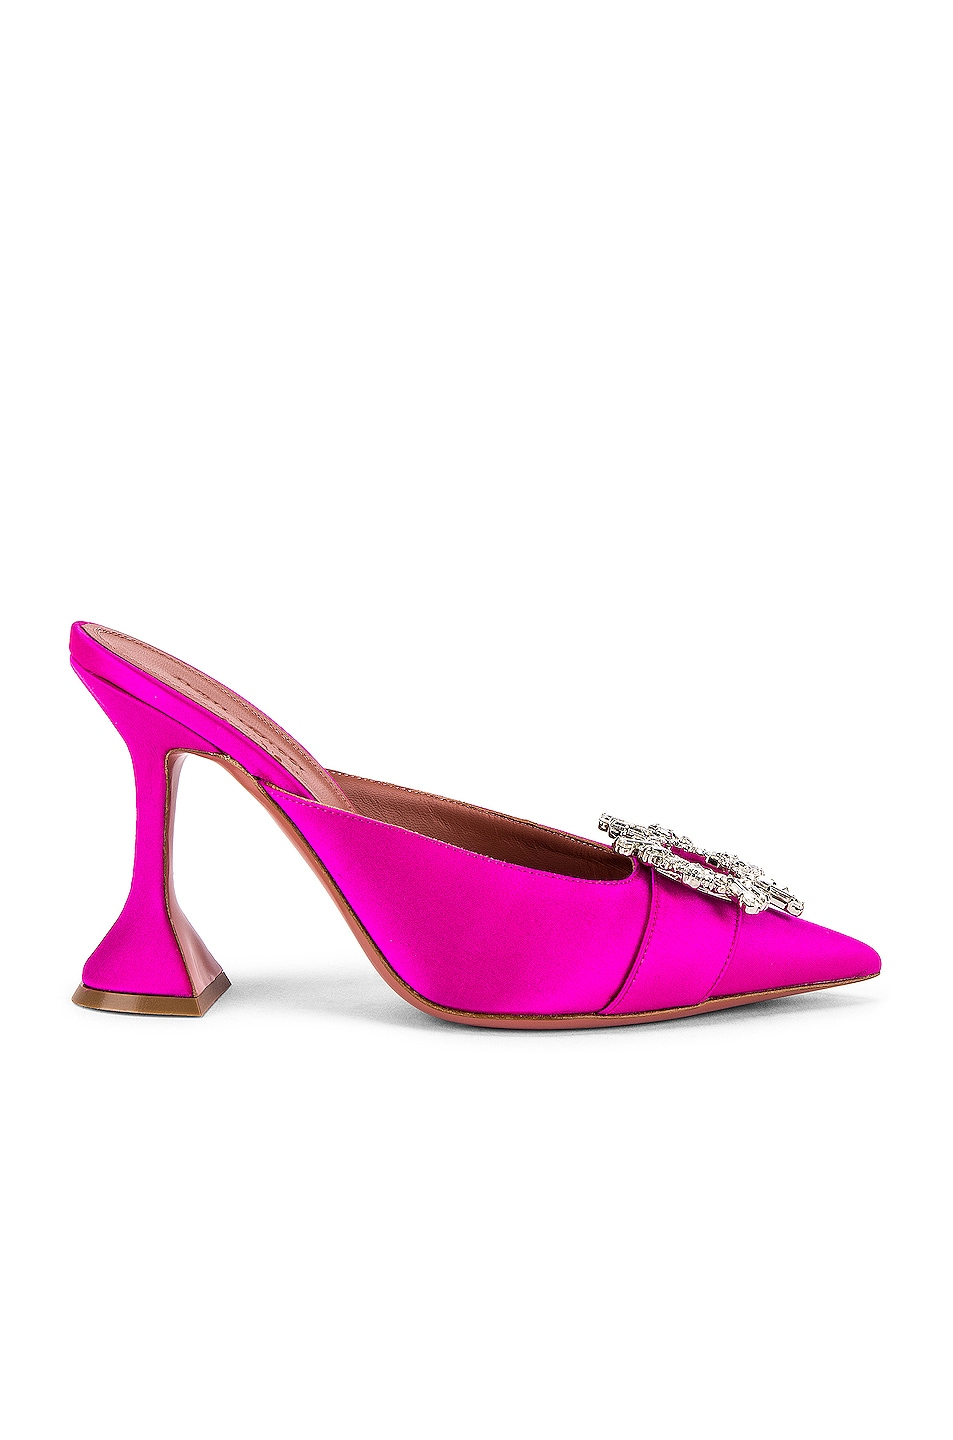 Image 1 of AMINA MUADDI Begum Satin Mule in Fuchsia